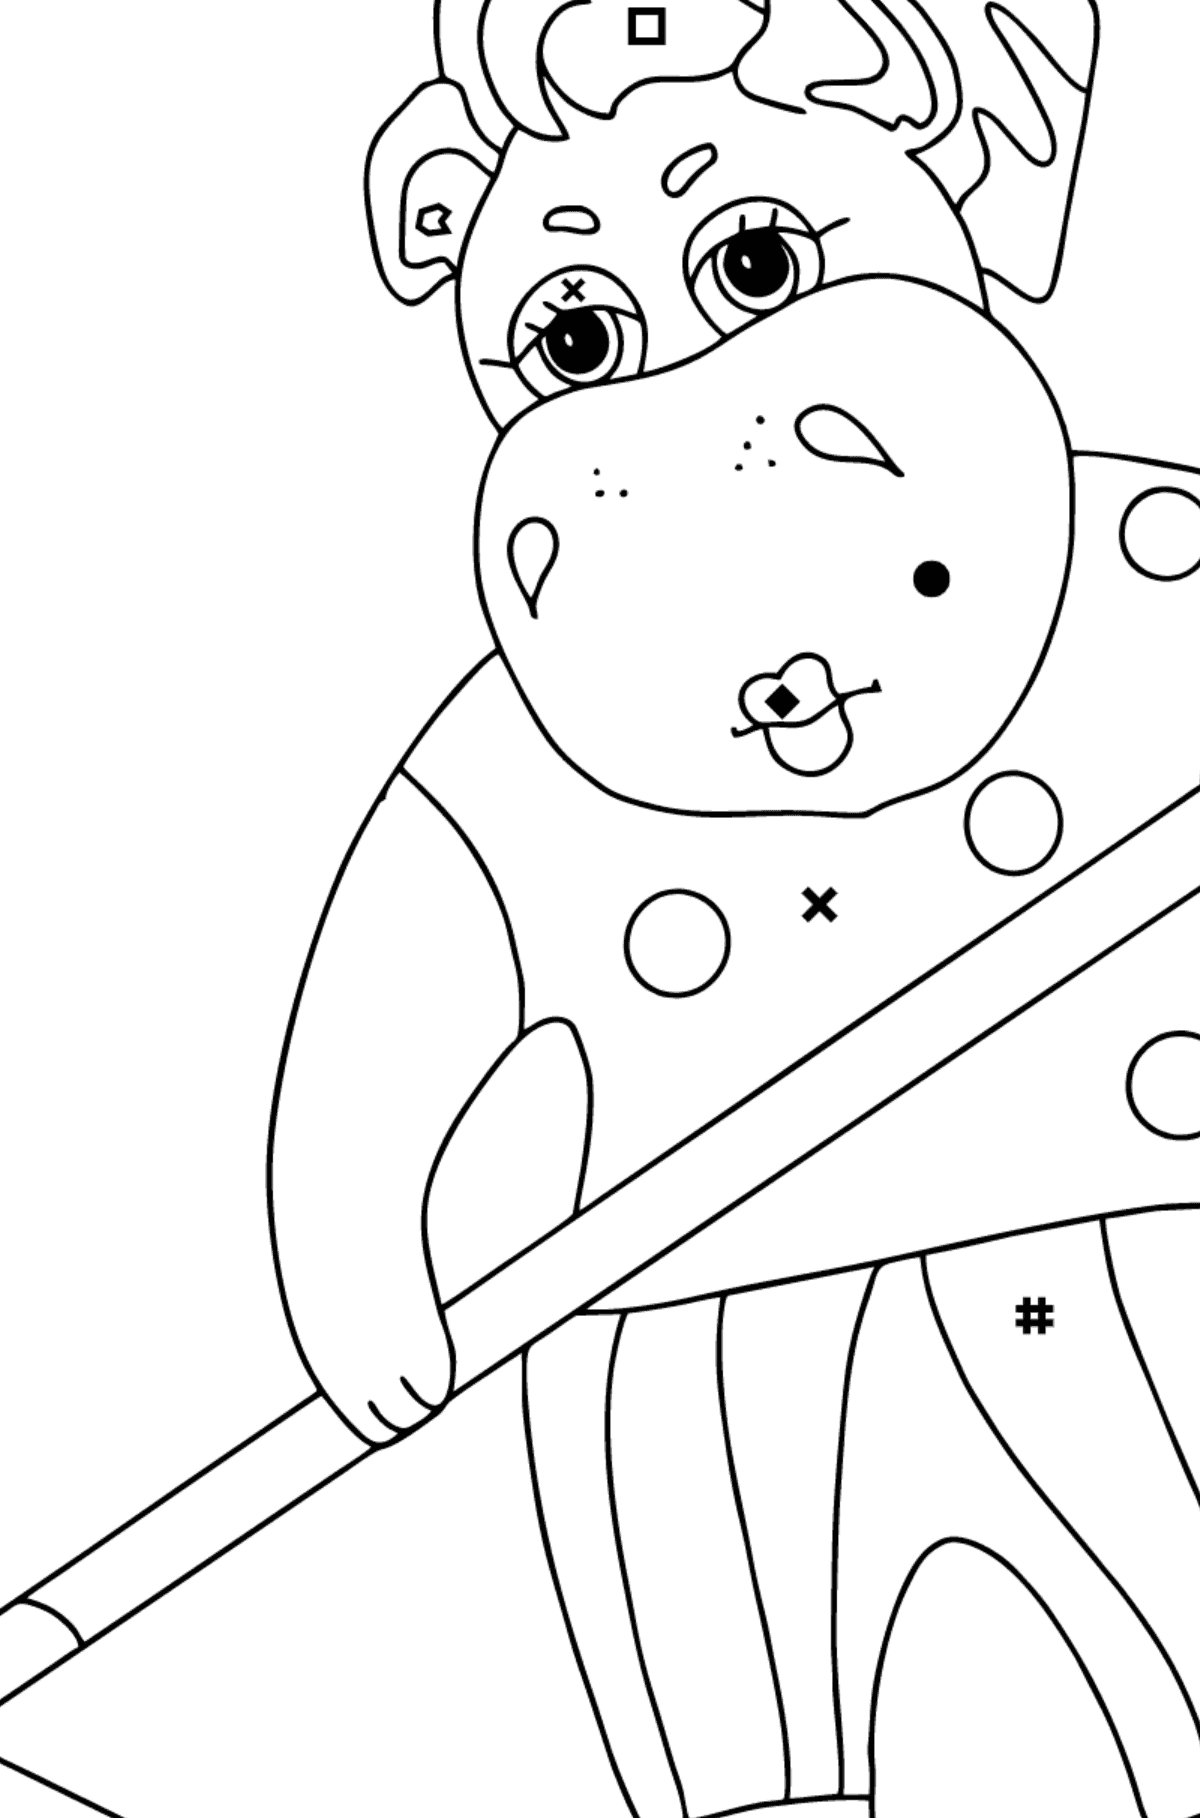 Coloring Page - A Hippo is Collecting Autumn Leaves for Kids  - Color by Symbols and Geometric Shapes